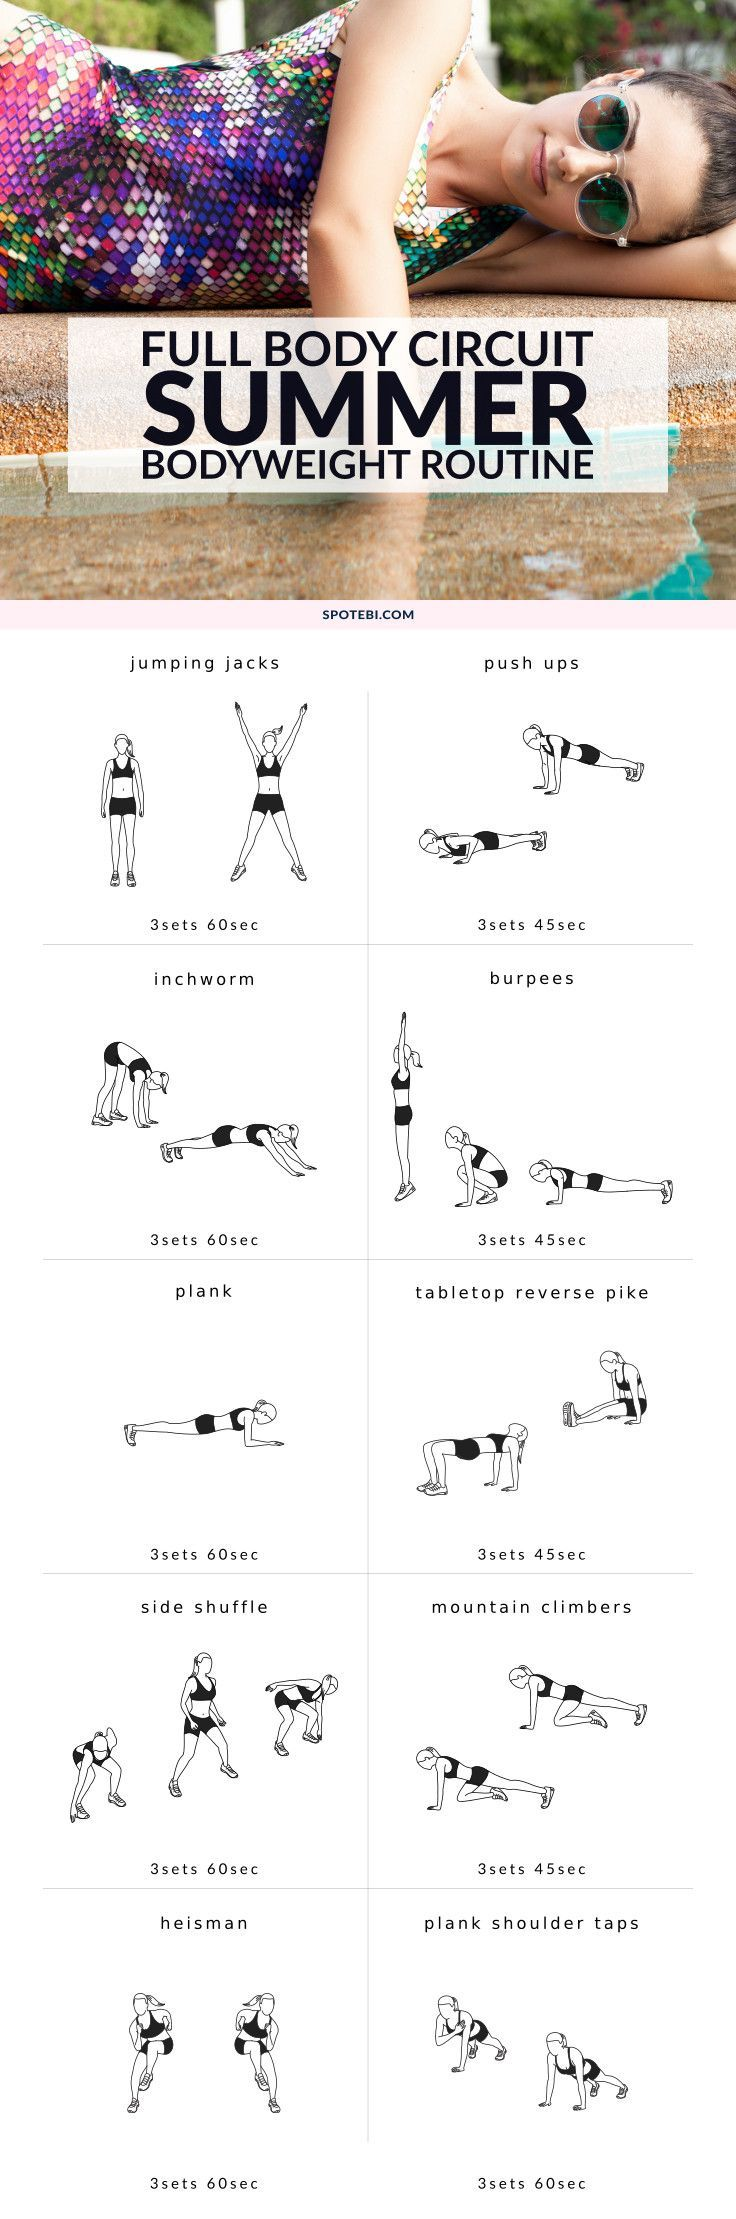 Get ready for the beach with these 10 calorie blasting moves! A summer body workout with butt lifting, core strengthening, and arm sculpting exercises. Boost your metabolism and get your body in shape for bikini season! http://www.spotebi.com/workout-routines/summer-body-workout-full-body-bodyweight-circuit/